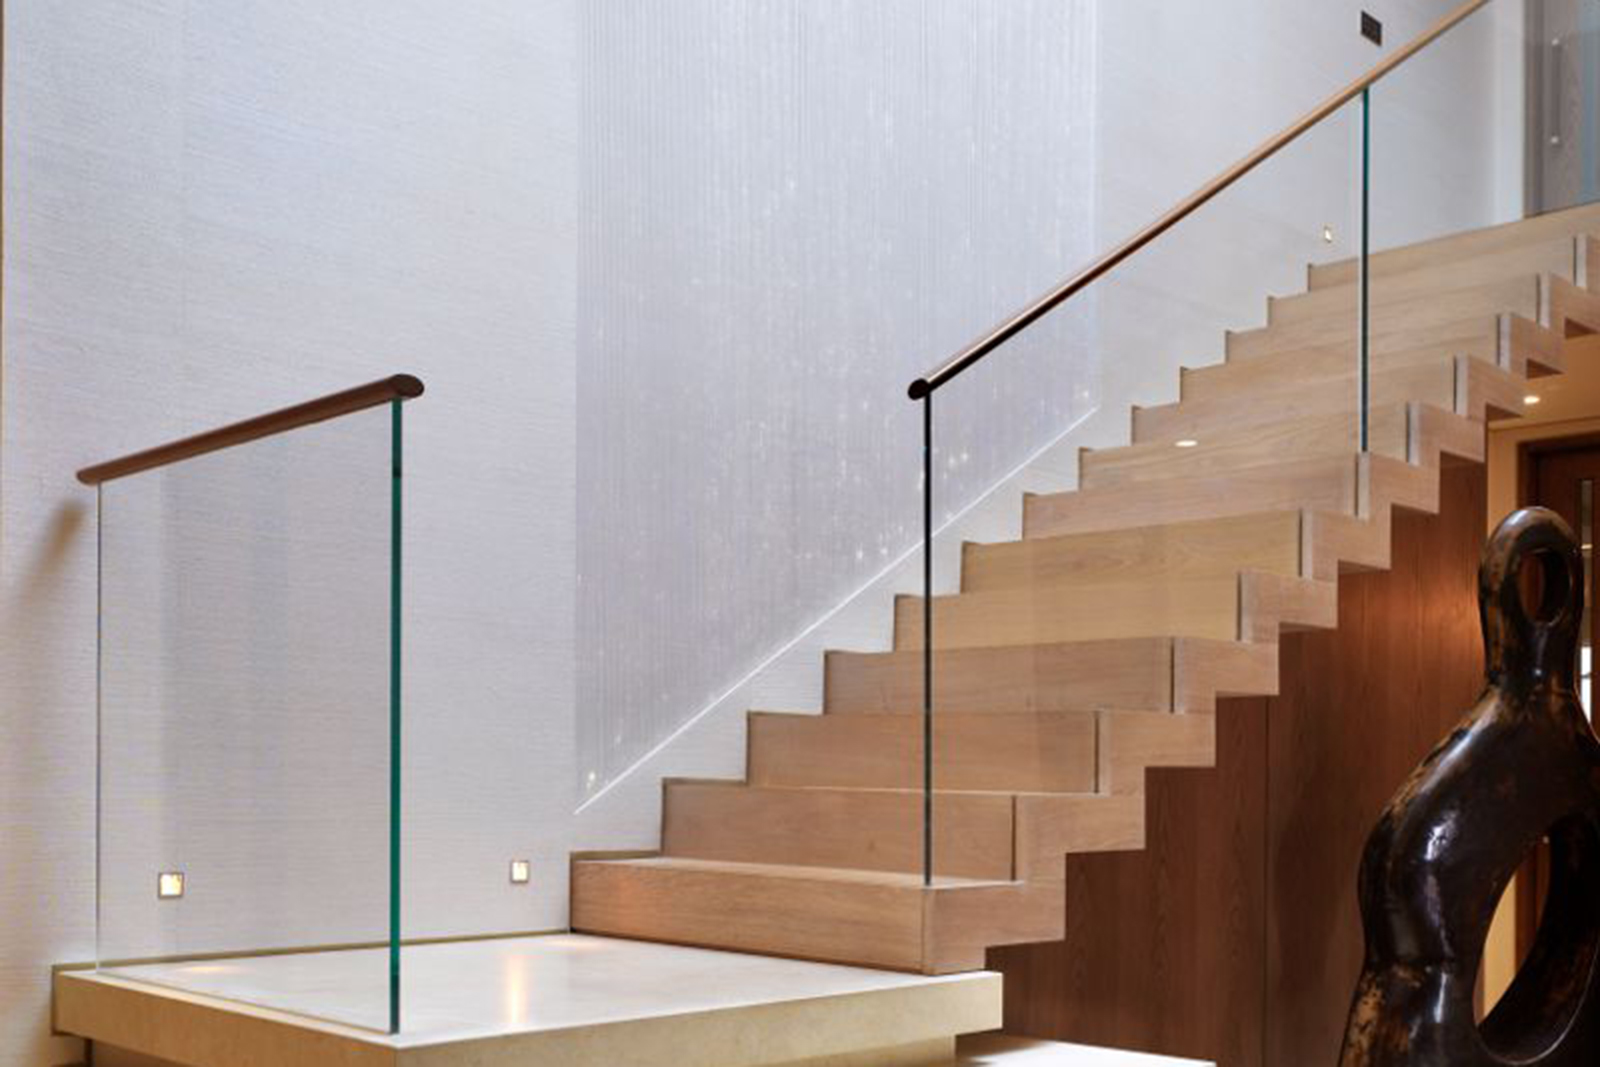 Bespoke Glass Staircase Balustrade with Wooden Handrail